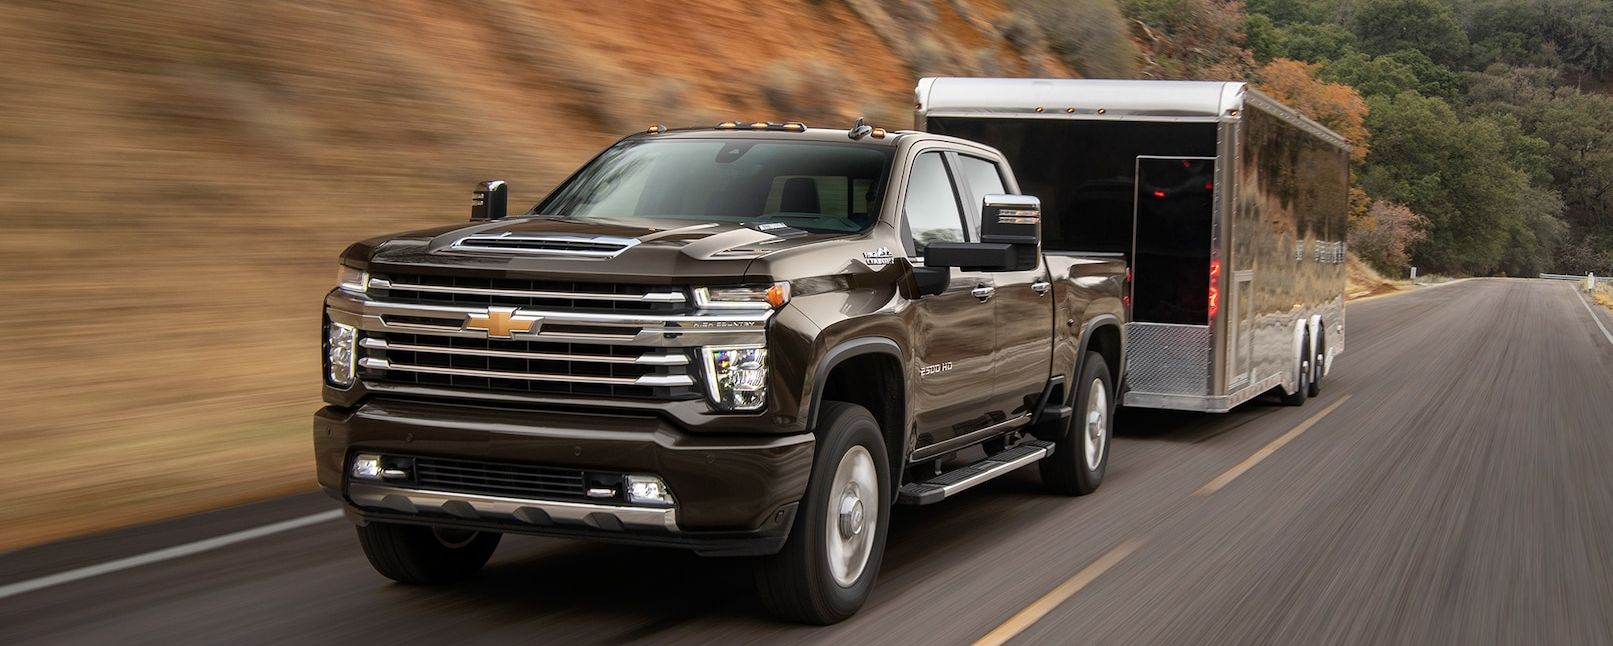 2020 Chevrolet Silverado HD Preview near Escondido, CA